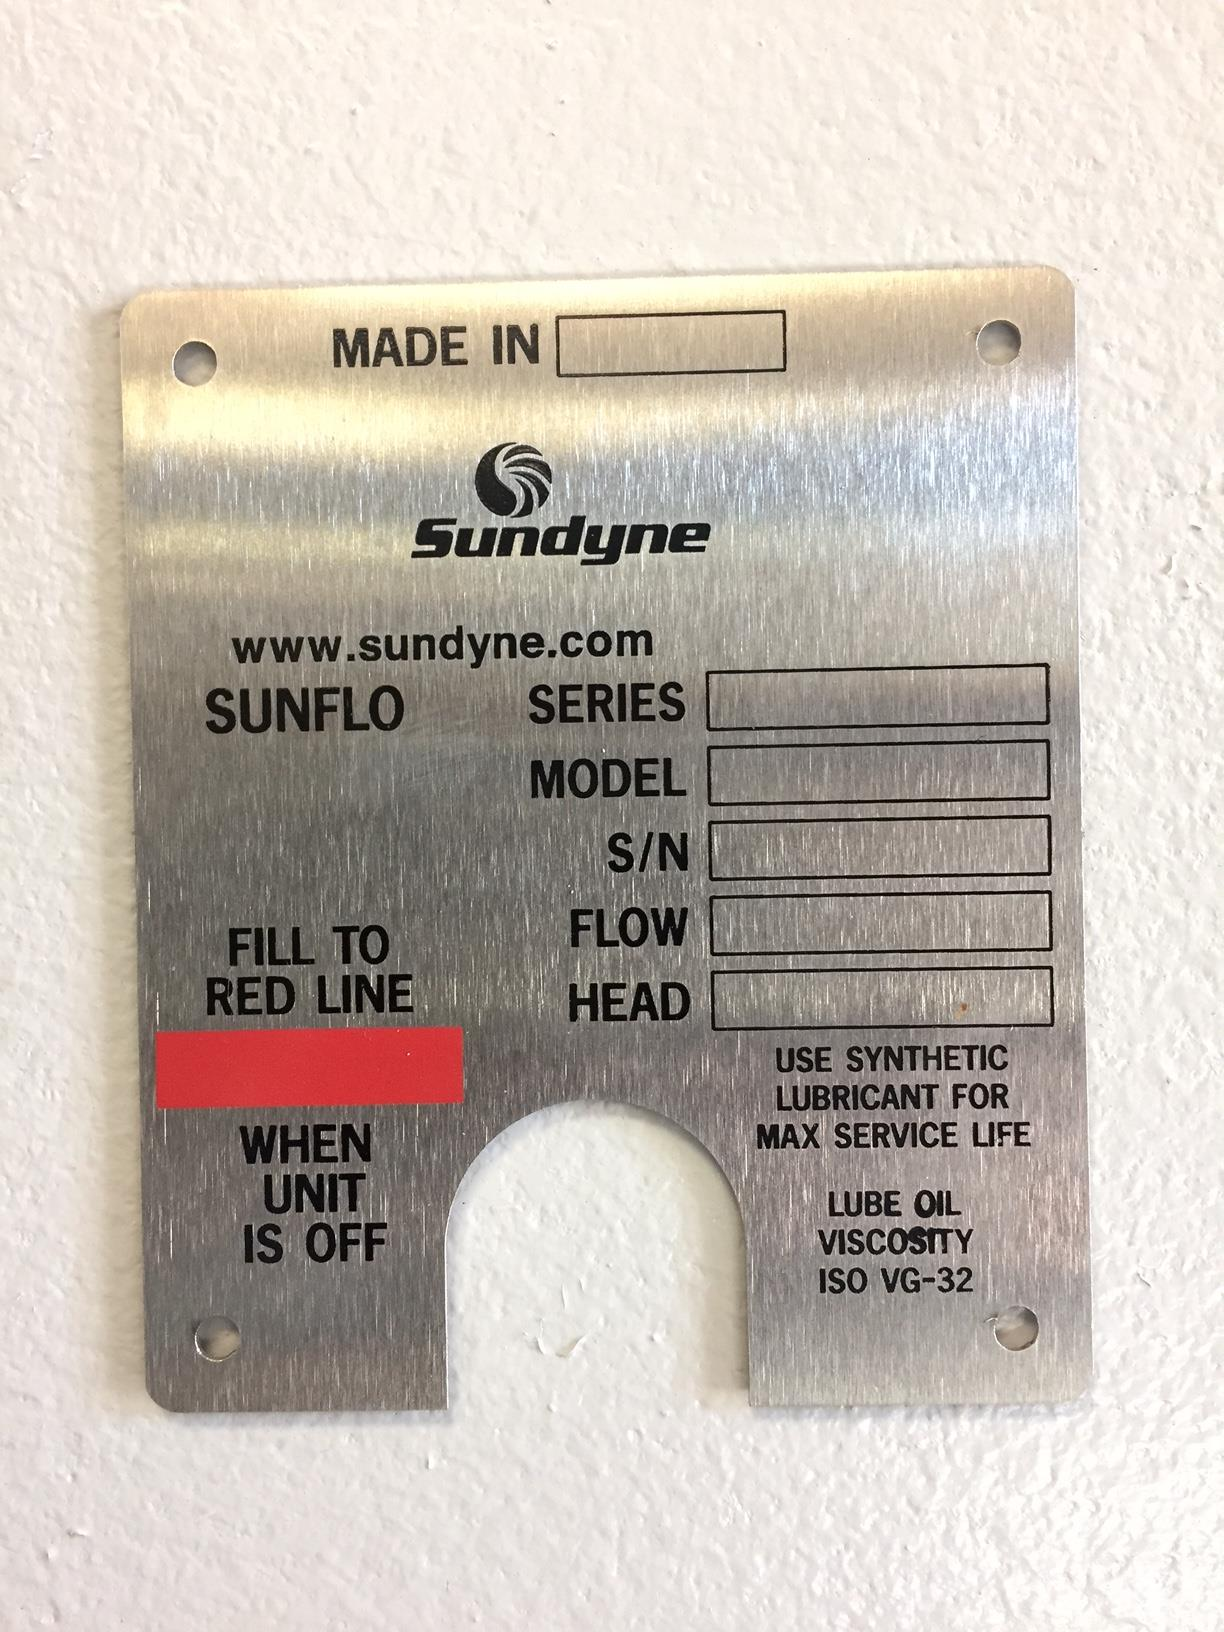 Sundyne Equipment Tag